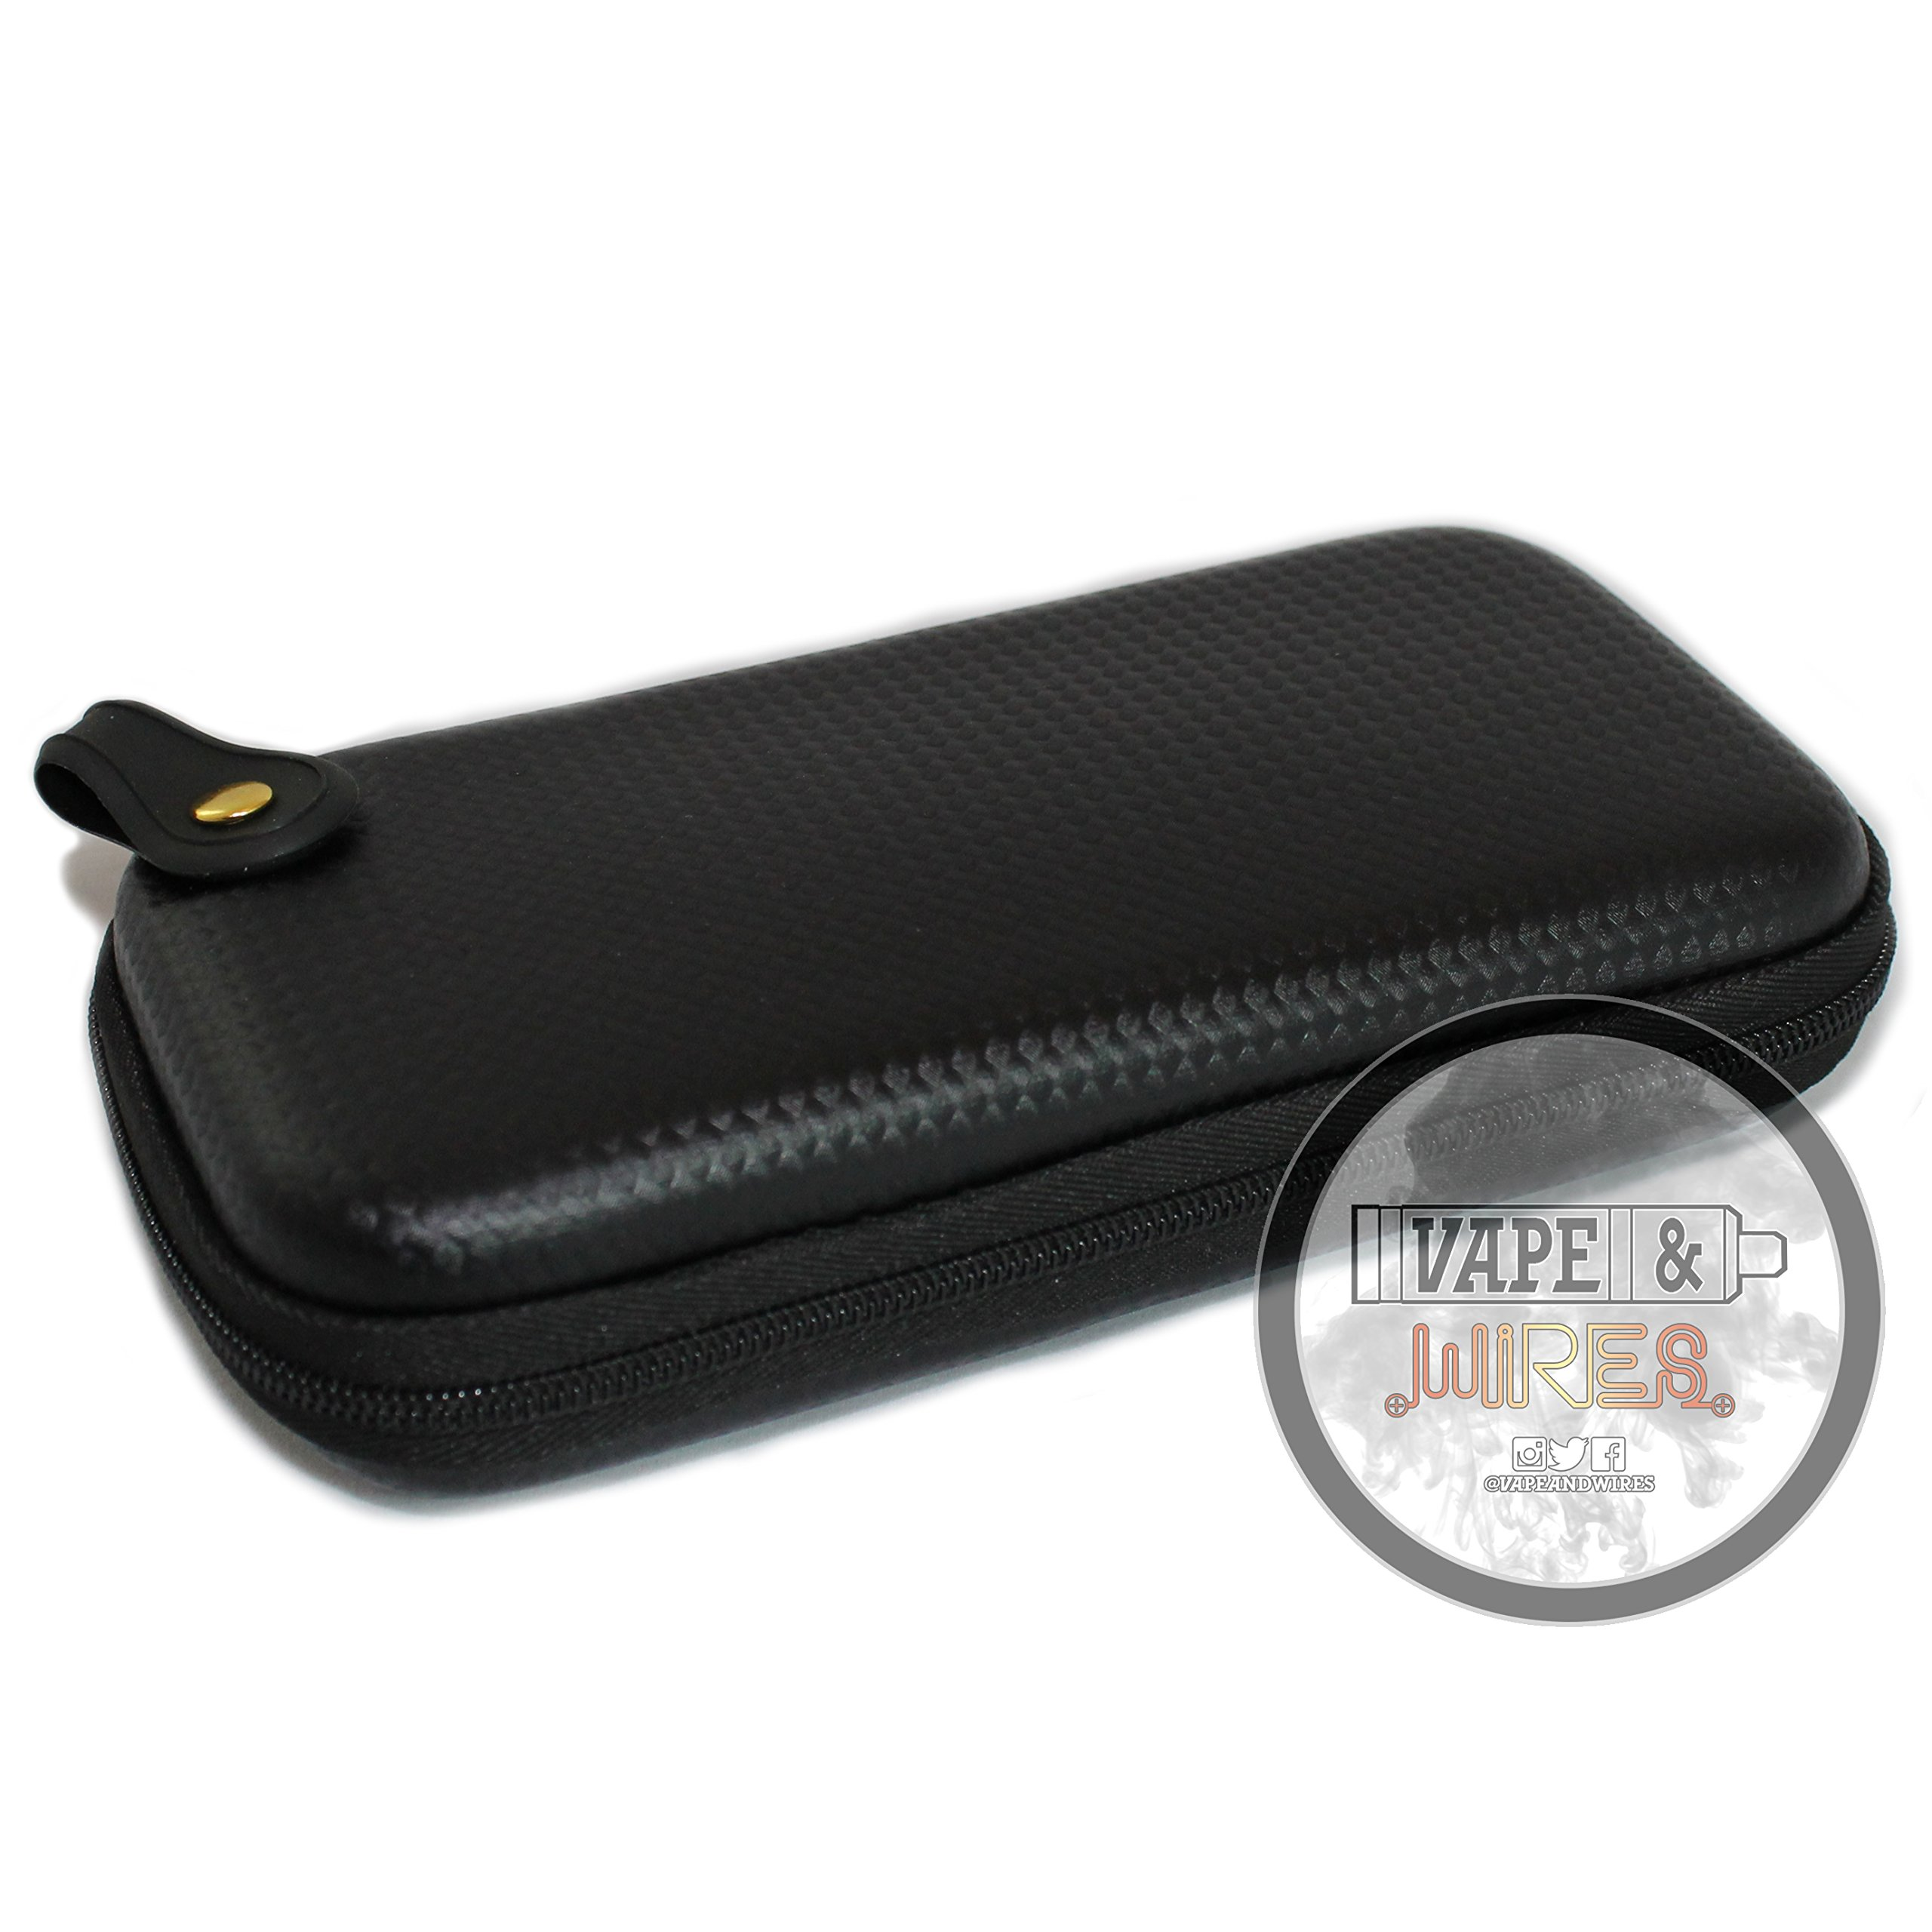 [Vape and Wires] Carbon Fiber Pattern Design Hard Carrying Case for Kanthal Wire, E-Liquid, Vapes, Vape Mods [CASE ONLY] by Vape and Wires